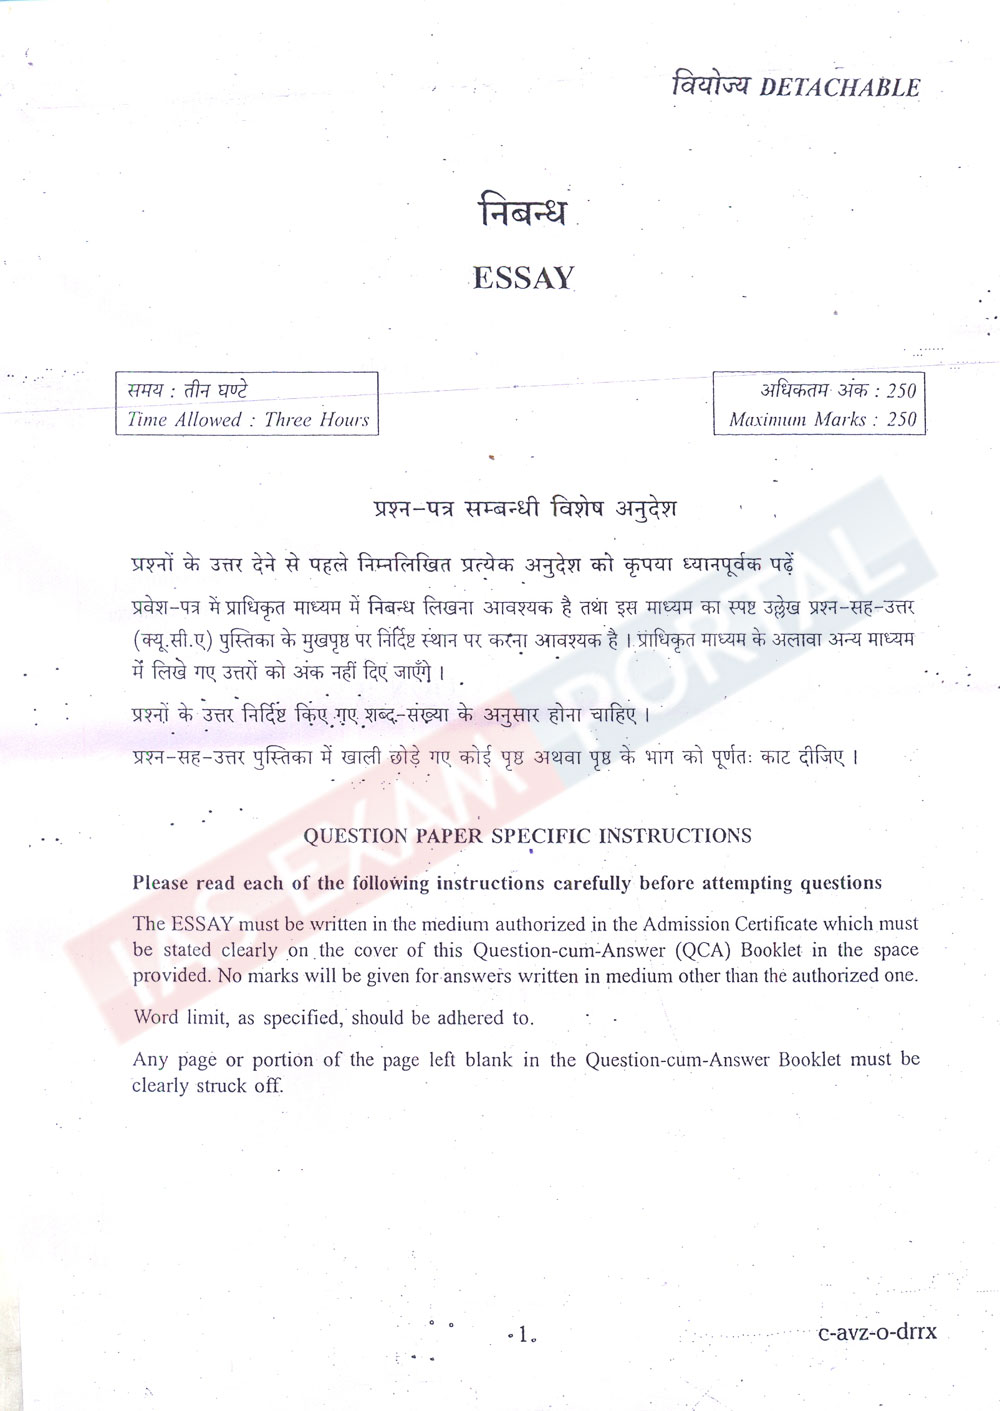 upsc ias mains essay compulsory question paper click here to full essay paper